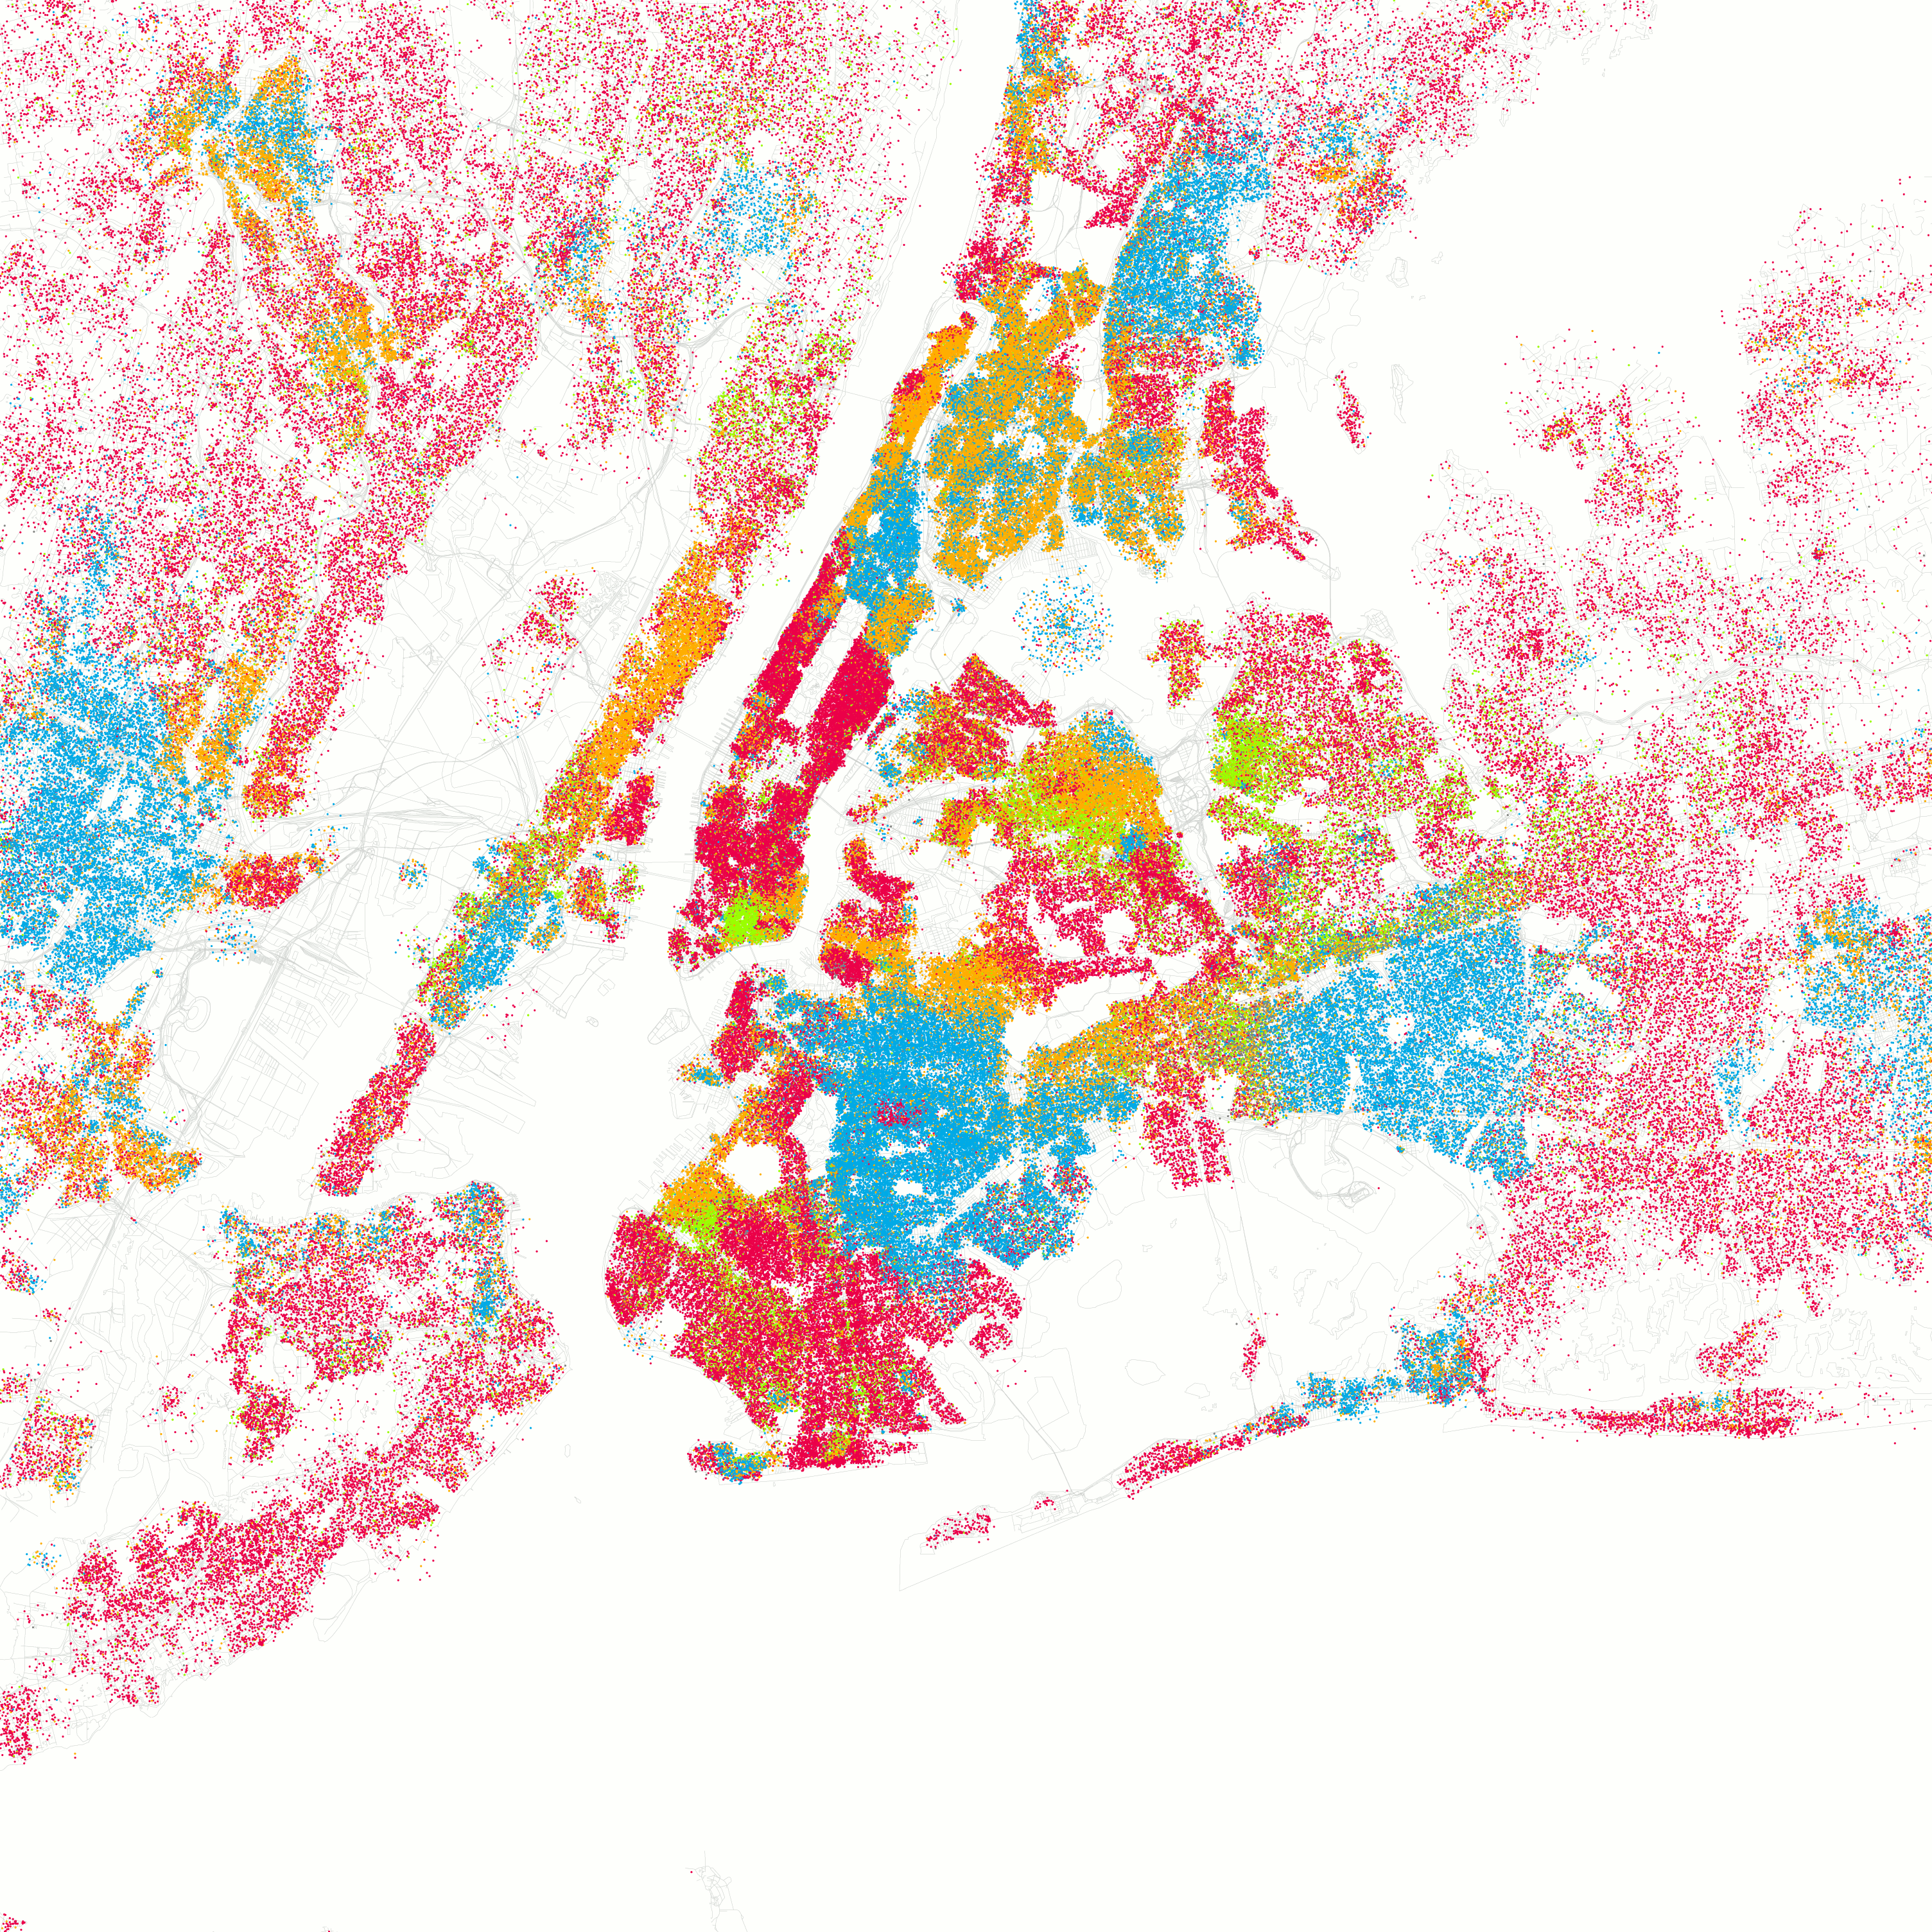 Race_and_ethnicity_New_York_City.png (3009×3009)